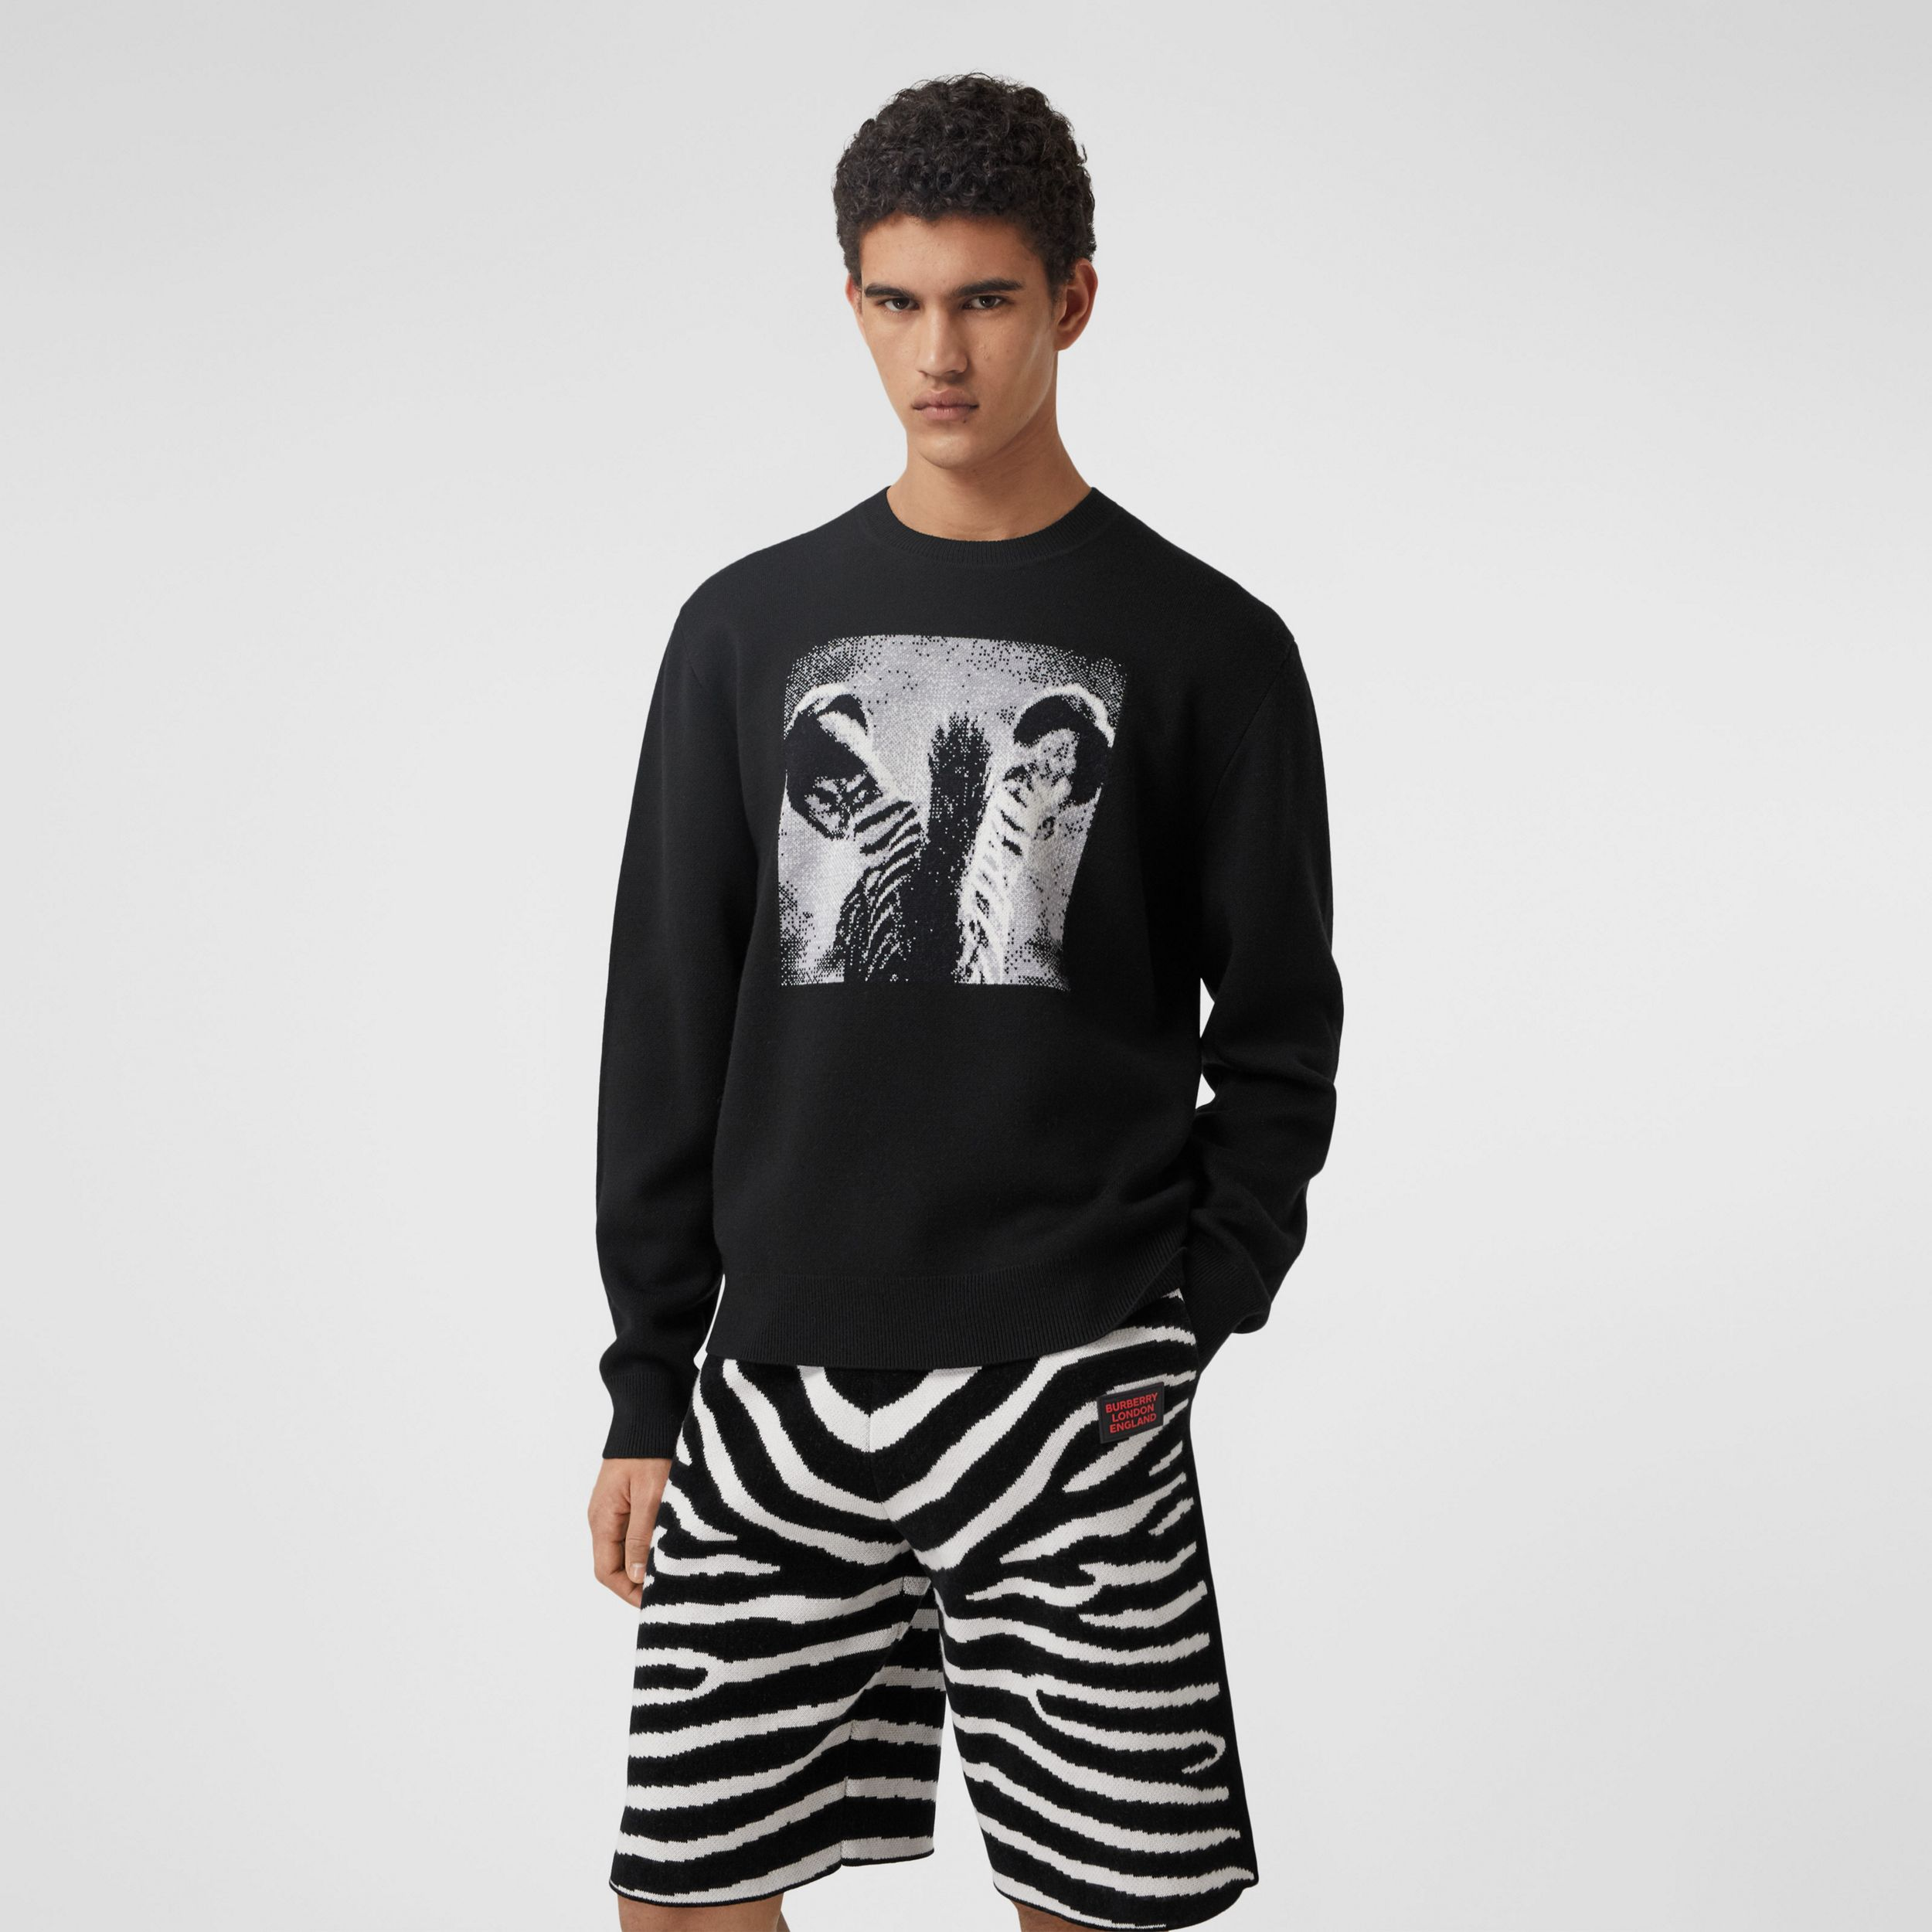 Zebra Wool Jacquard Sweater in Black - Men | Burberry - 1